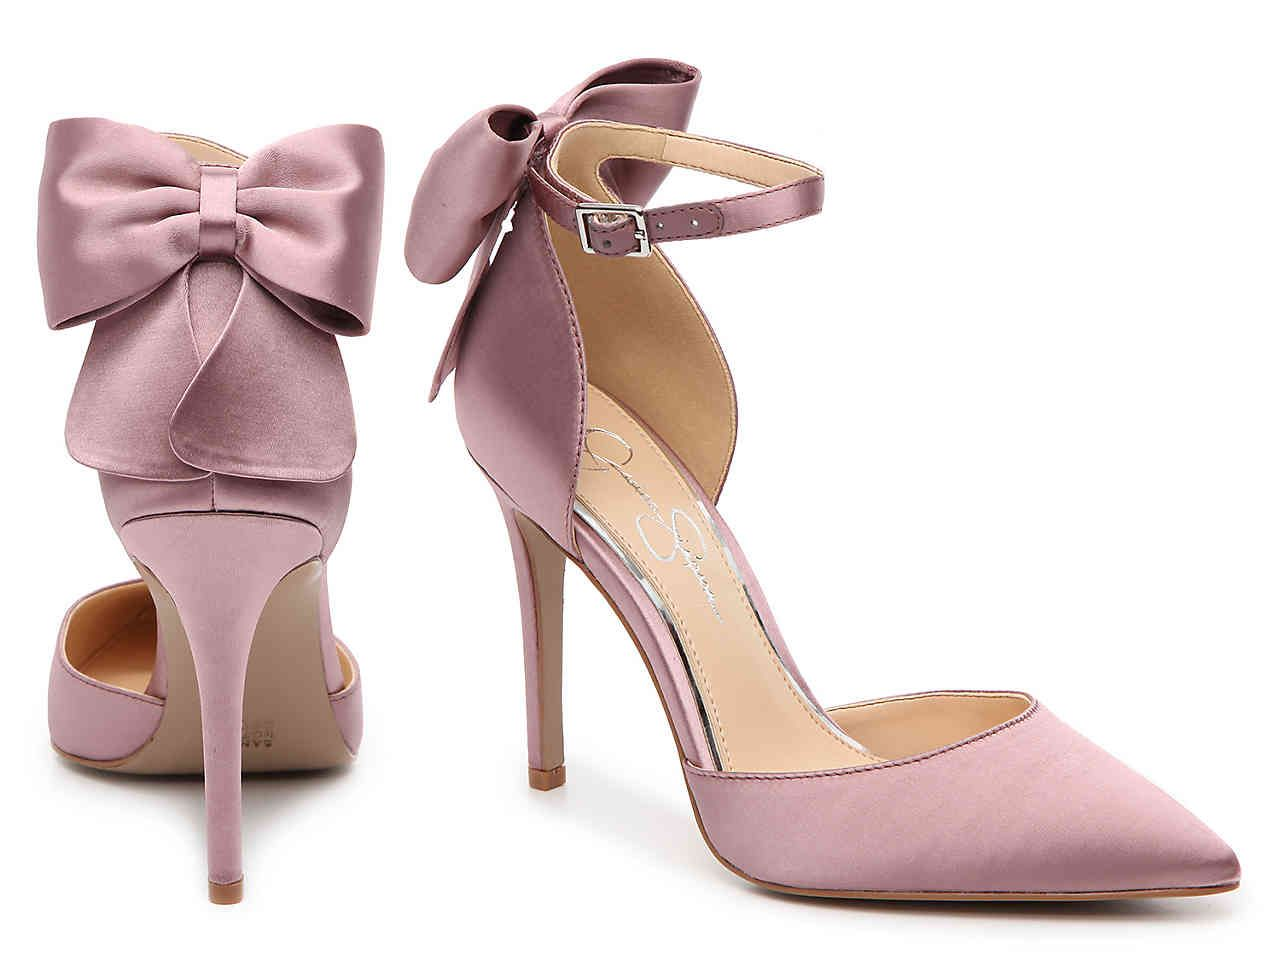 Polla Pump $59.99 I love these Jessica Simpson heels!